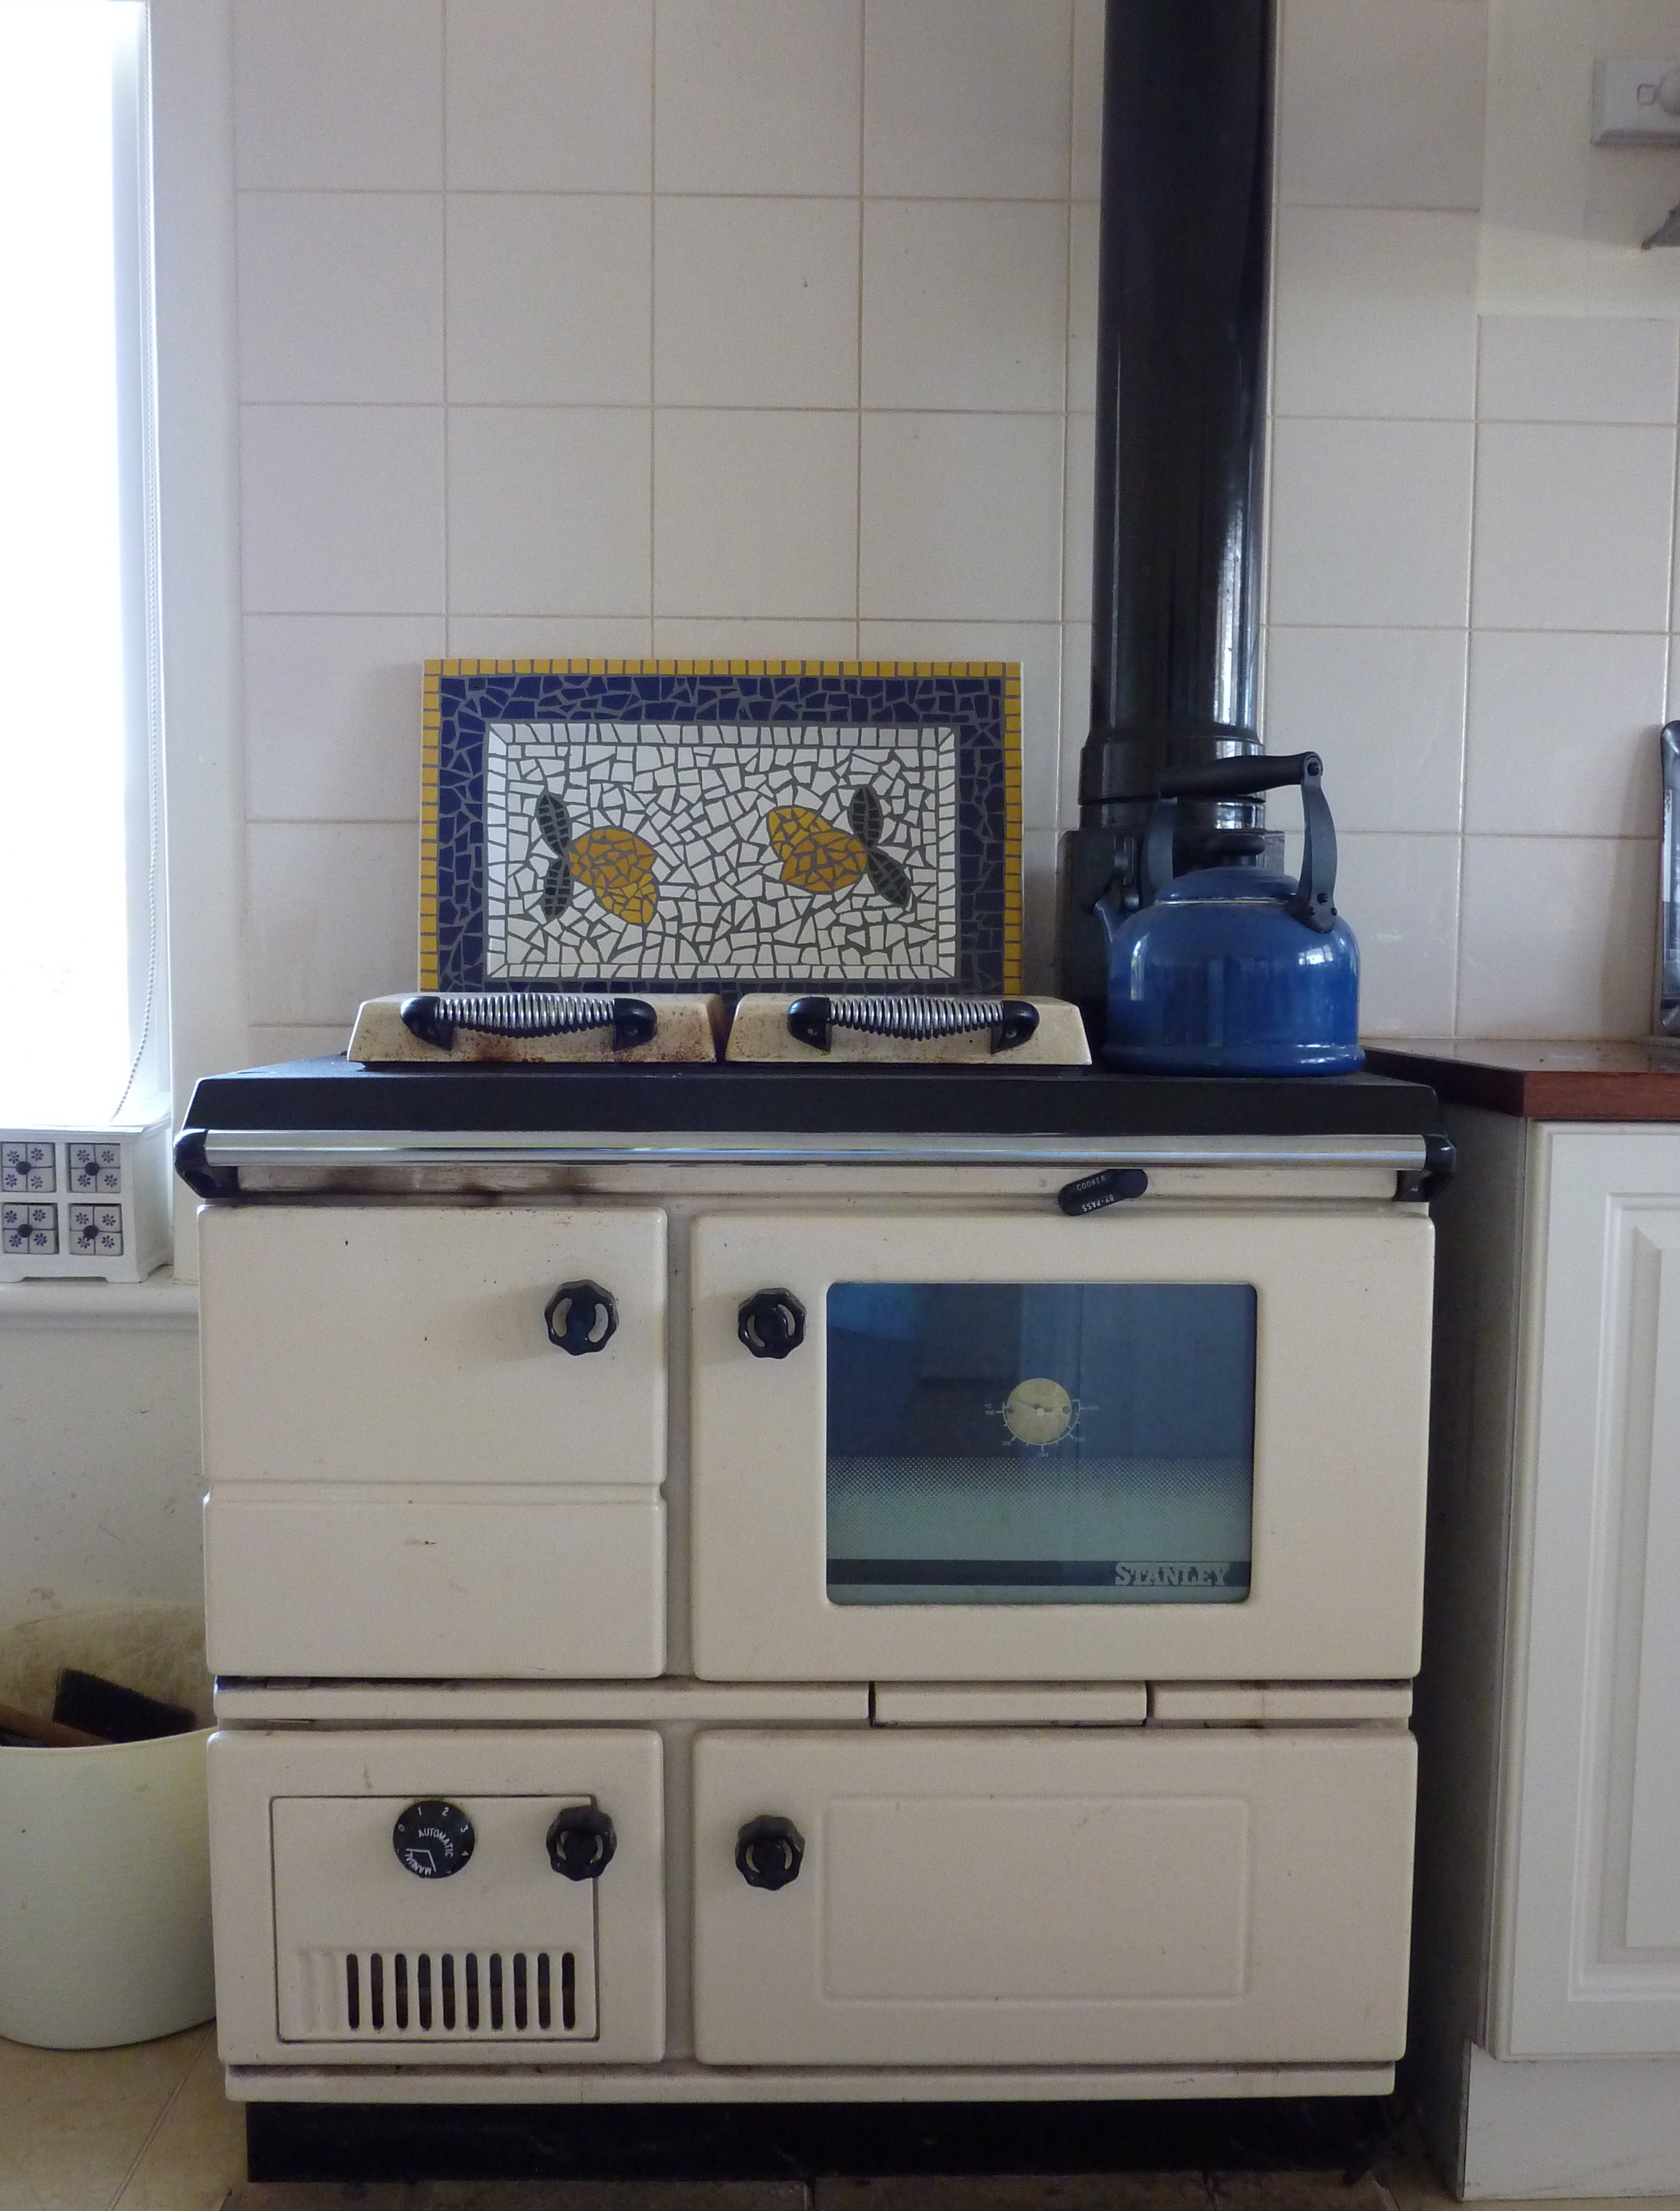 Second Hand Kitchens For Sale Perth